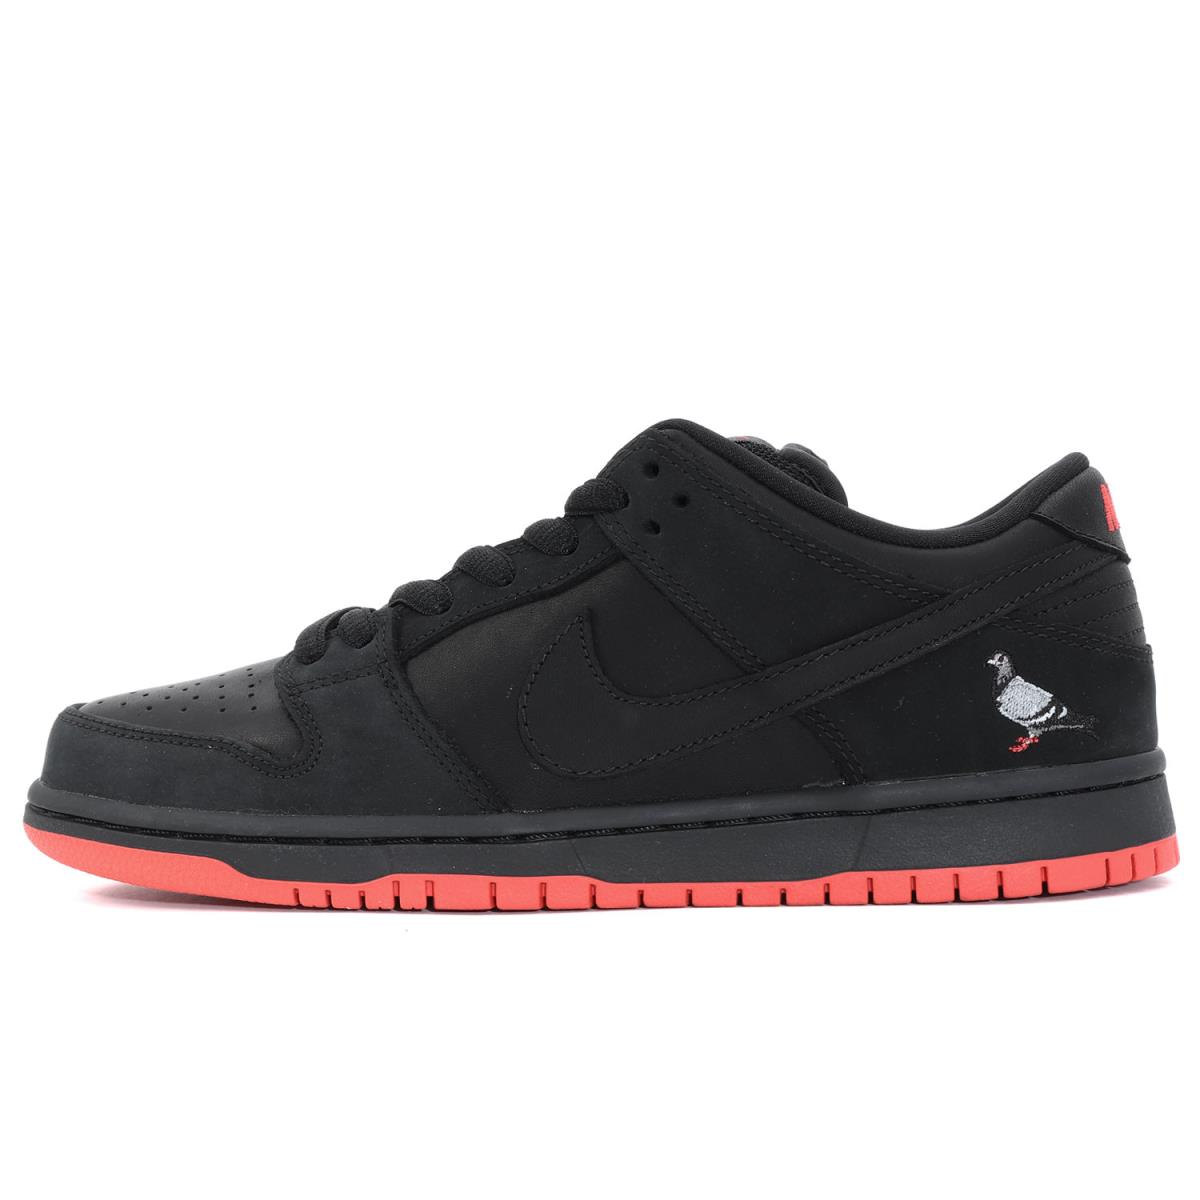 0907e68a0a73 BEEGLE by Boo-Bee  NIKE (Nike) SB DUNK LOW TRD QS BLACK PIGEON ...